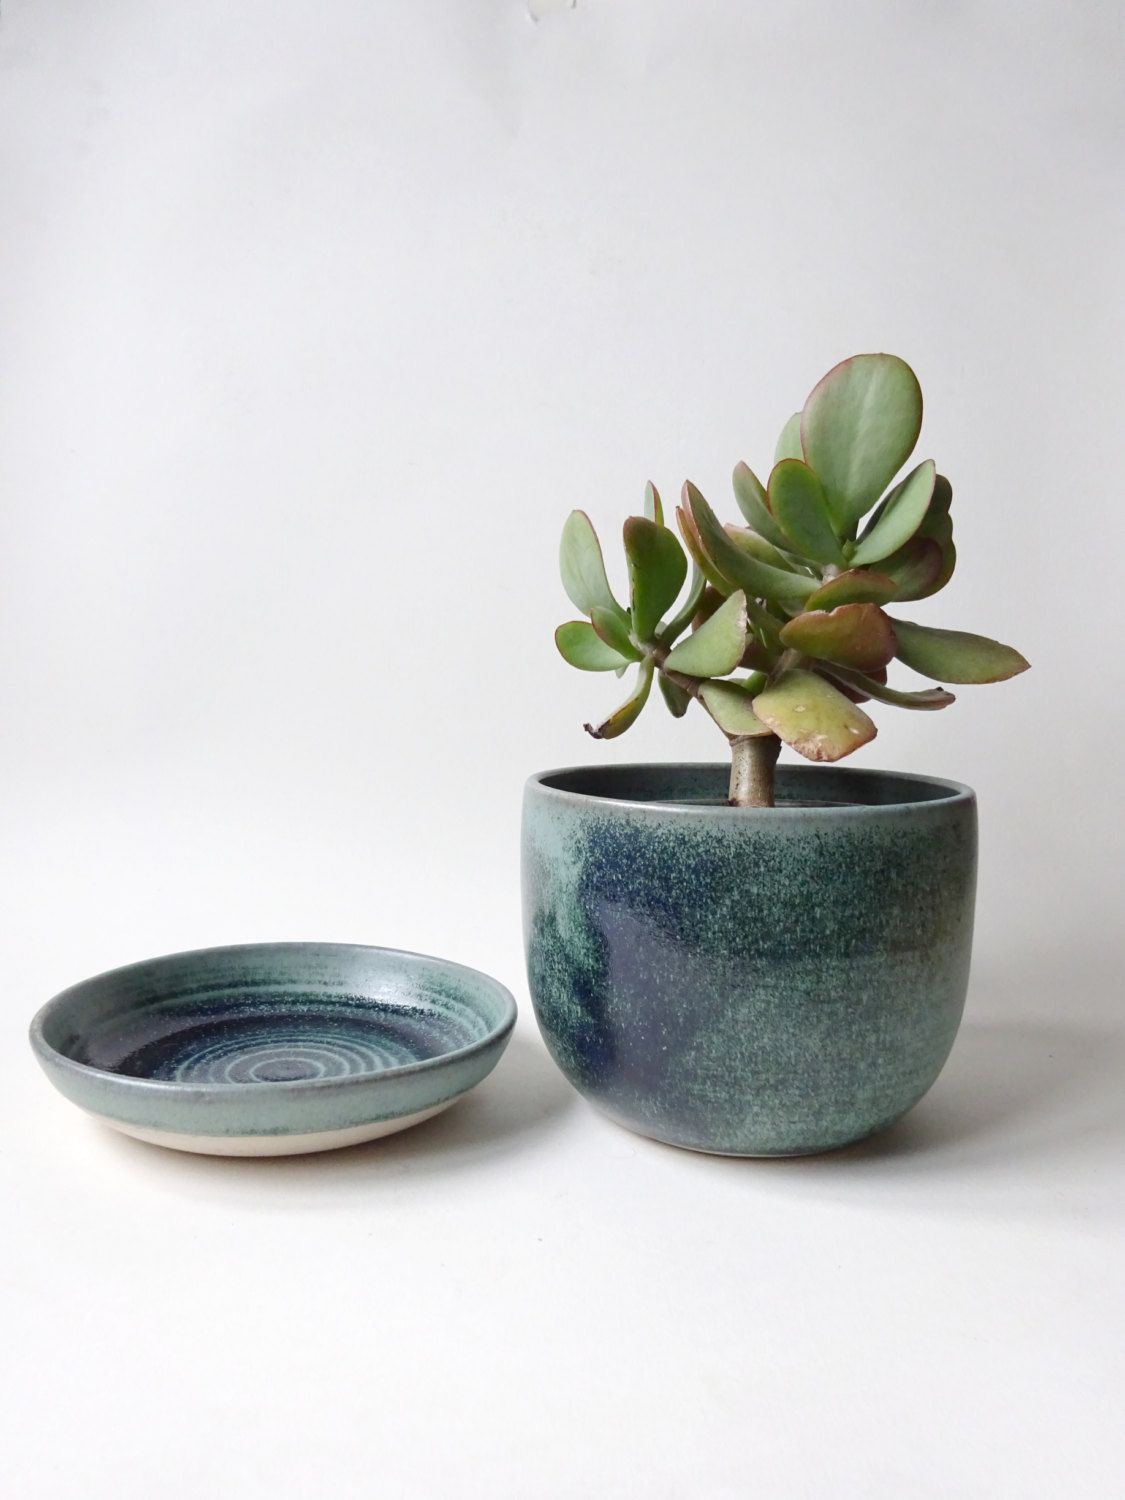 Private Listing For Nader Plant Pot With Drainage Hole And Tray Blue Green Vase Handmade Ceramic Pot With Saucer Drip Tray Ceramic Pot Handmade Ceramics Hanging Vases